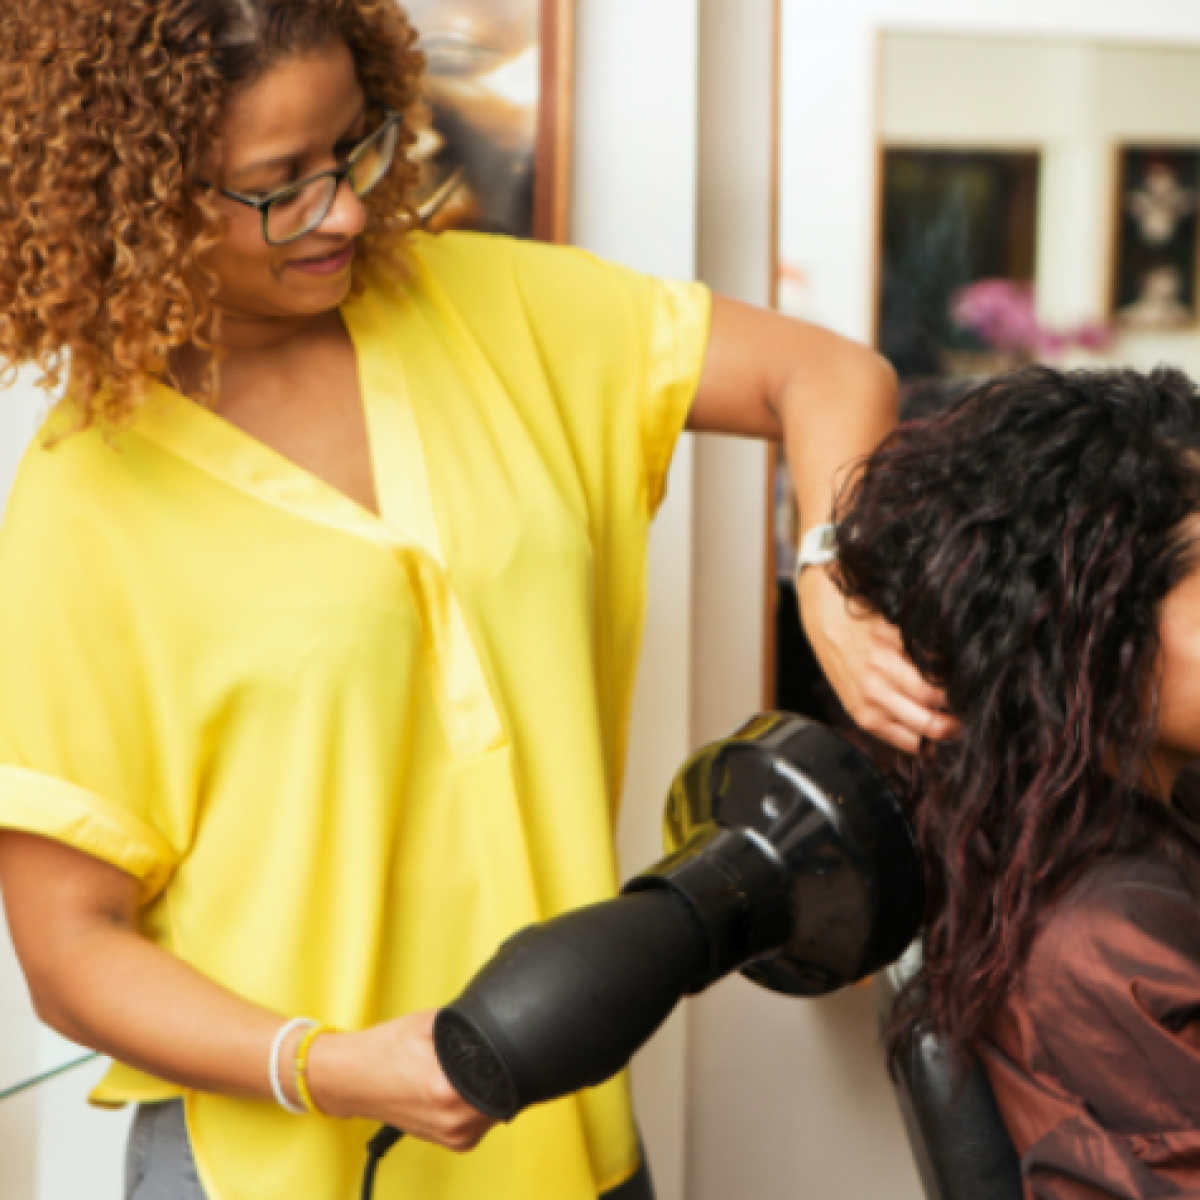 Black Hair Salon Owners And Stylists Can Apply To Receive A New $10,000 Grant